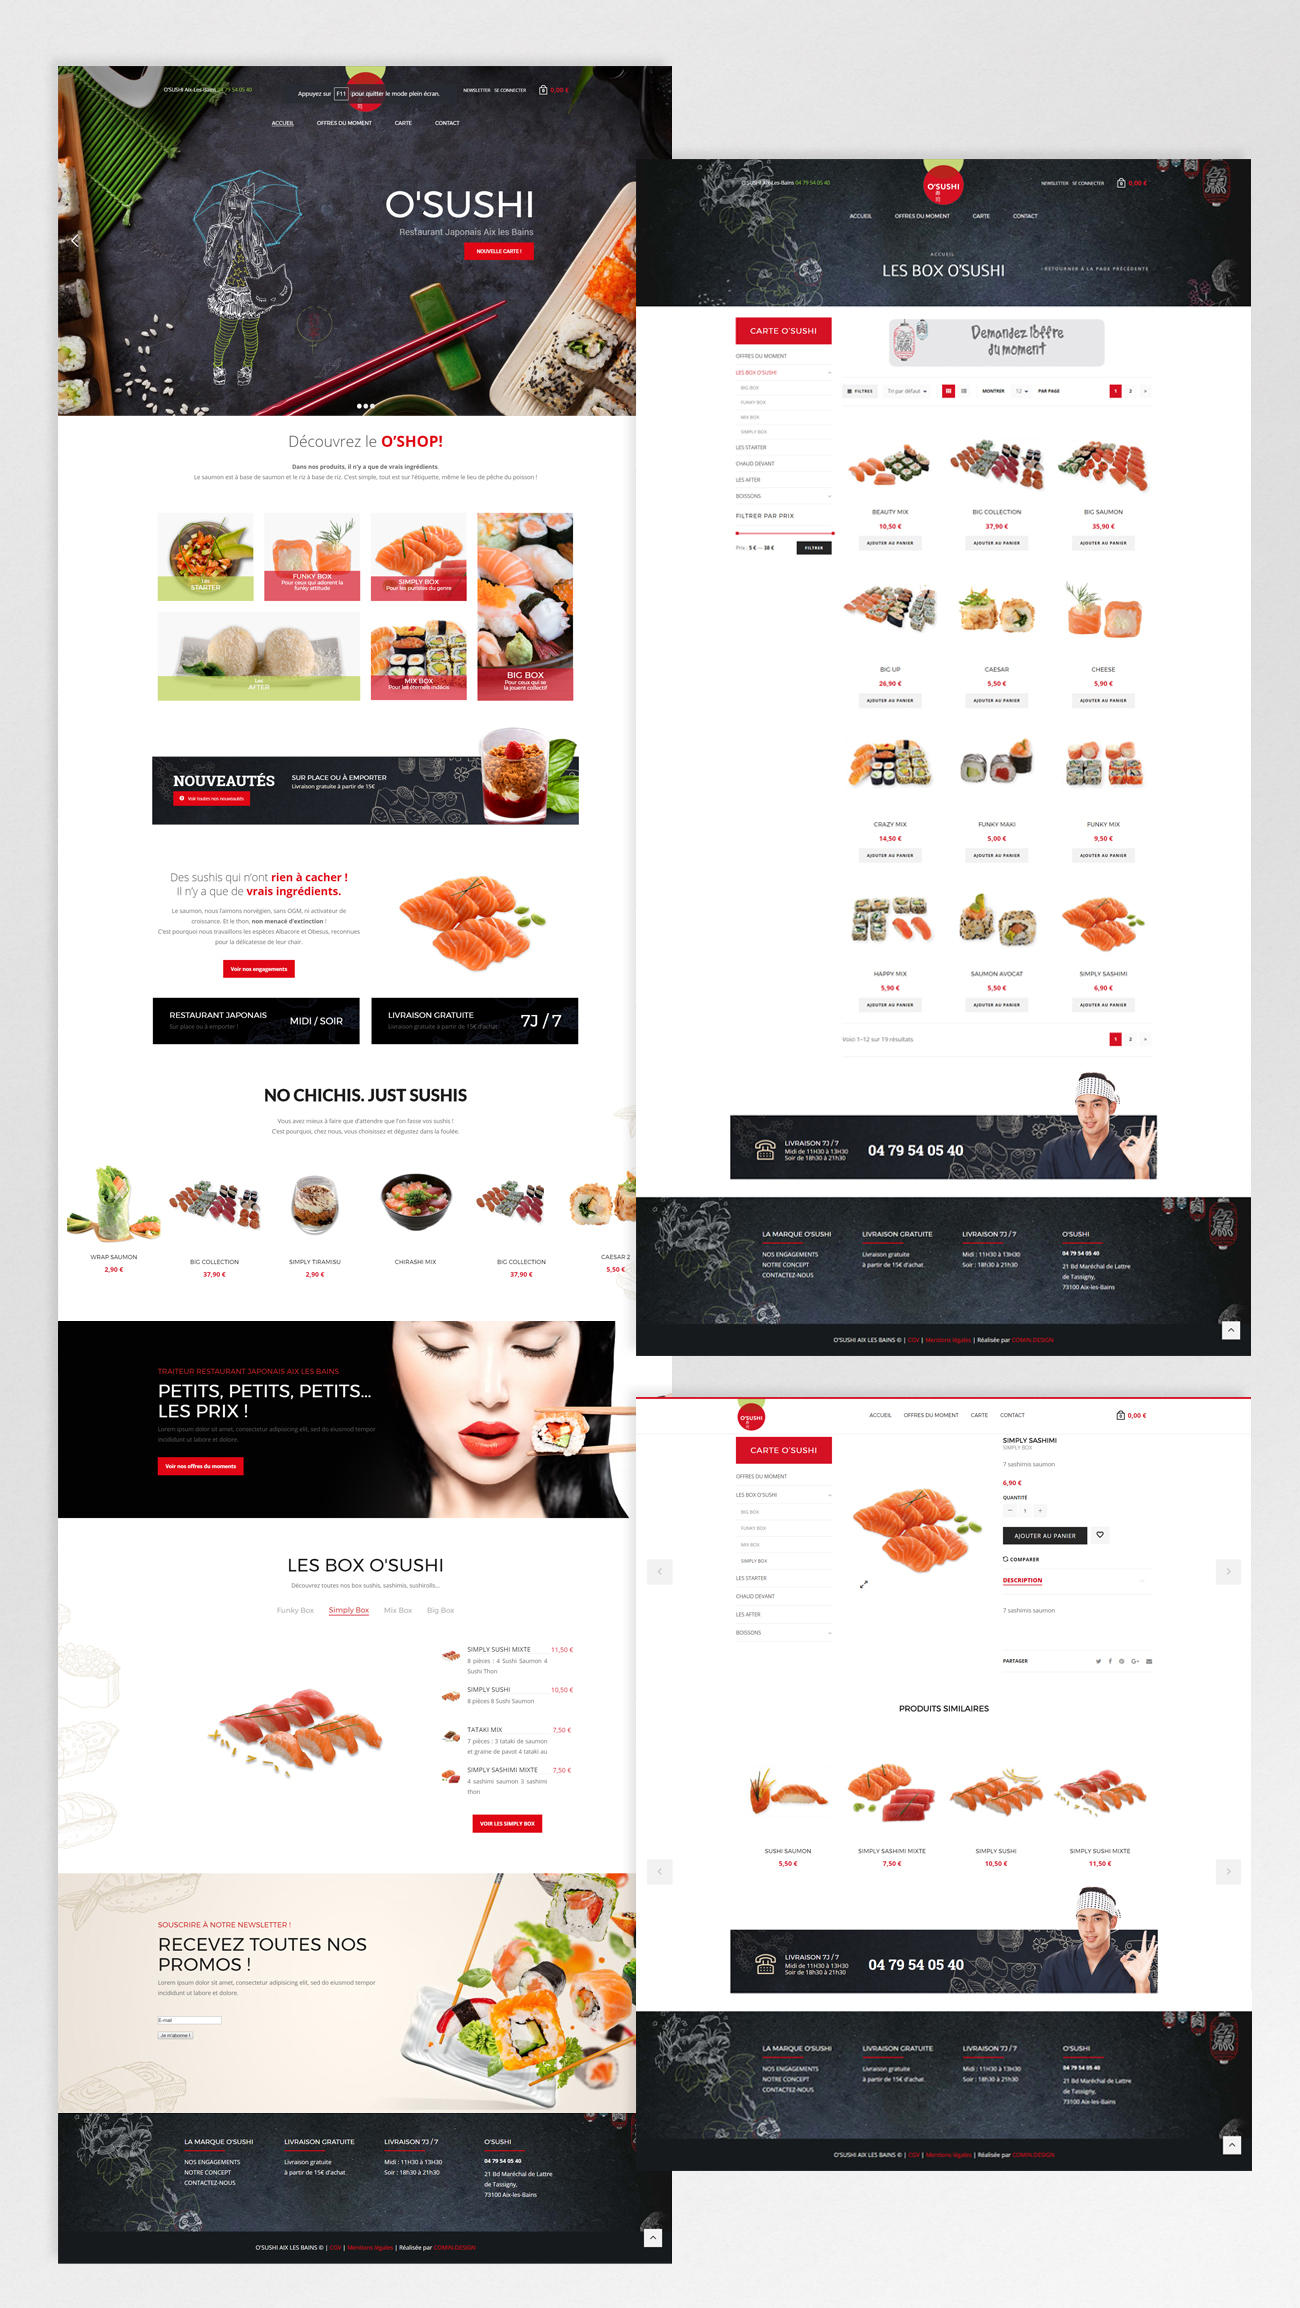 O'SUSHI – homepage / détails